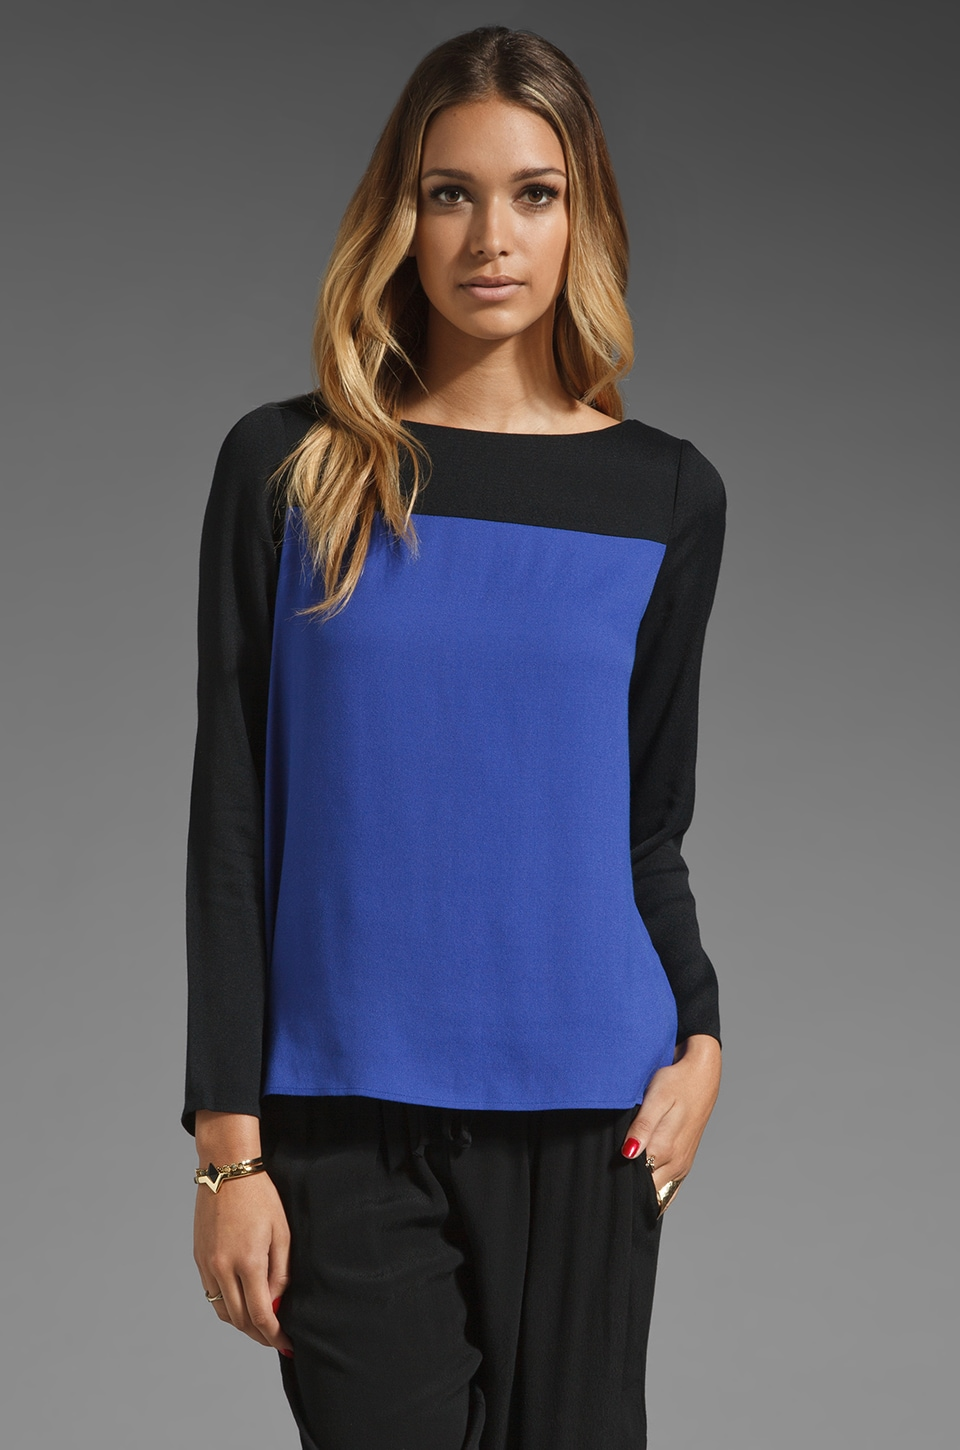 Joie Aliso Color Block Top in Nile Blue/Caviar